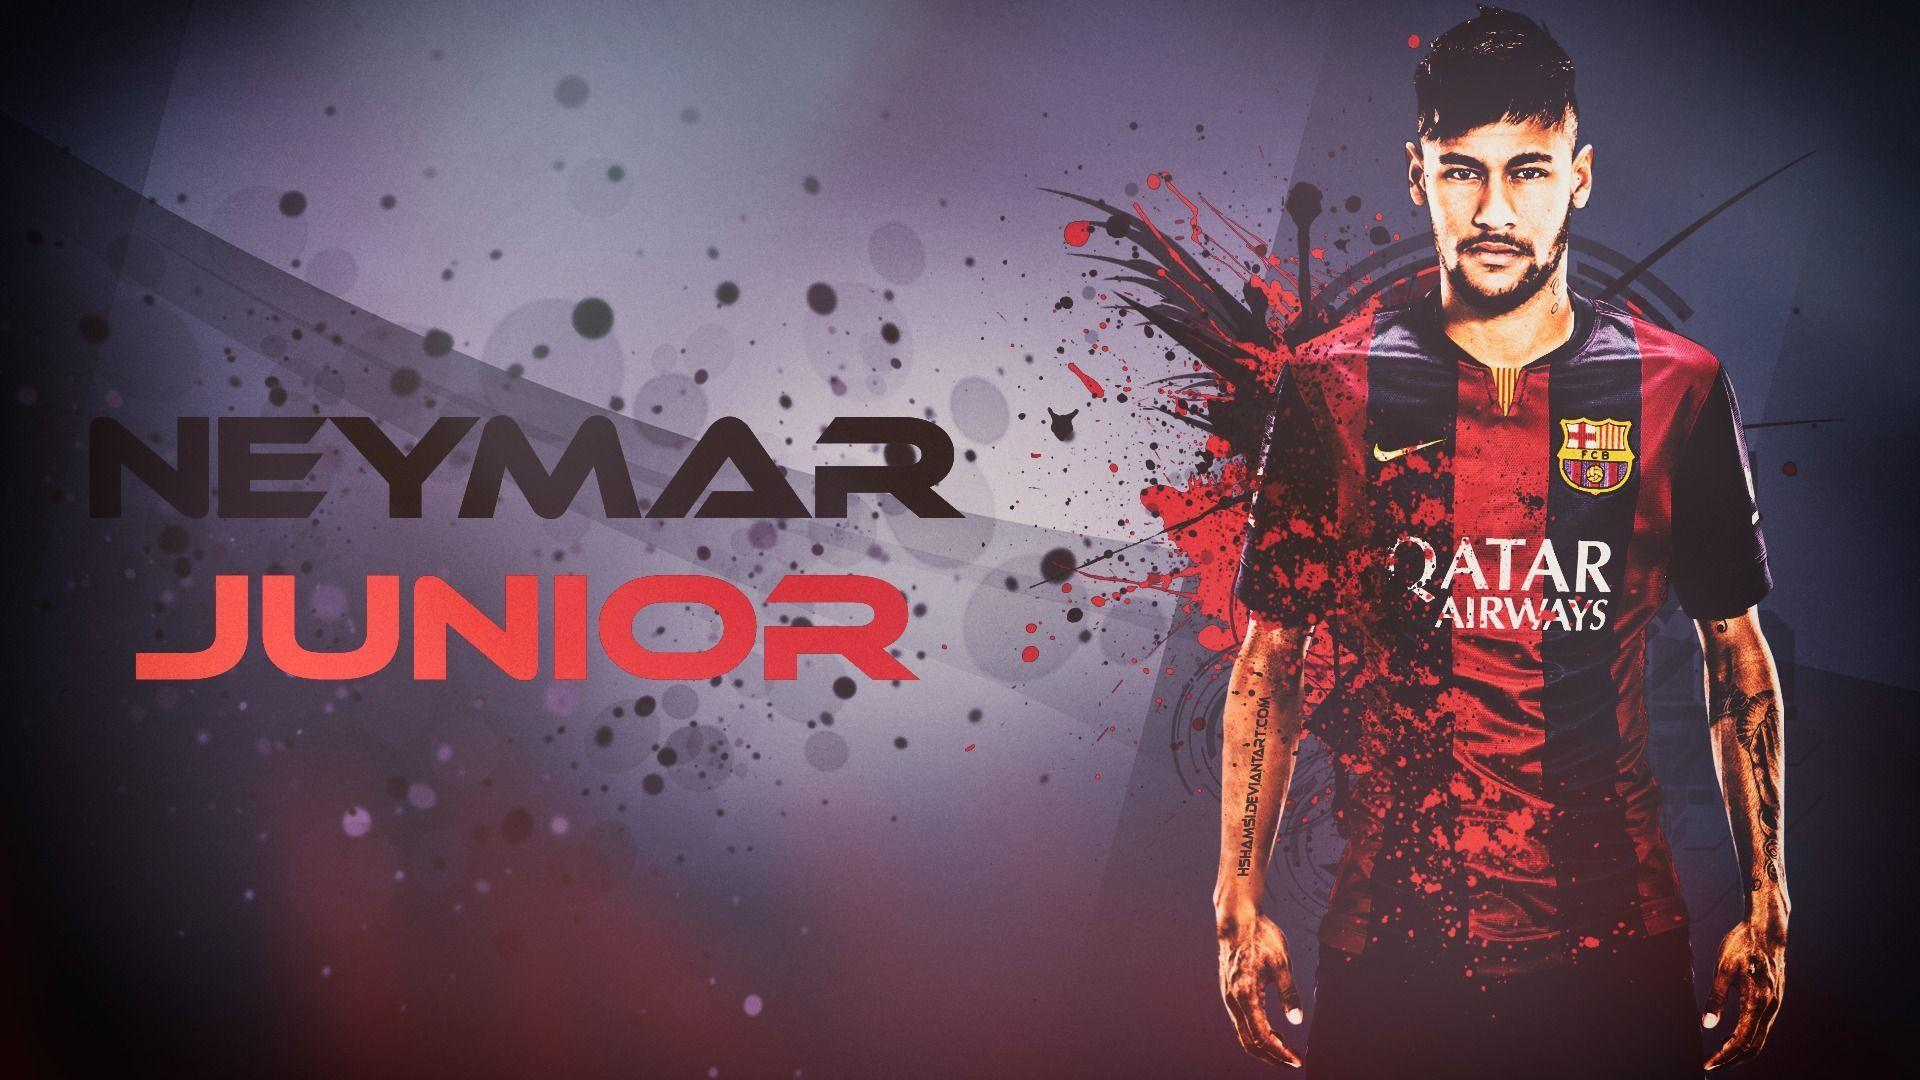 Neymar Jr Wallpaper HD